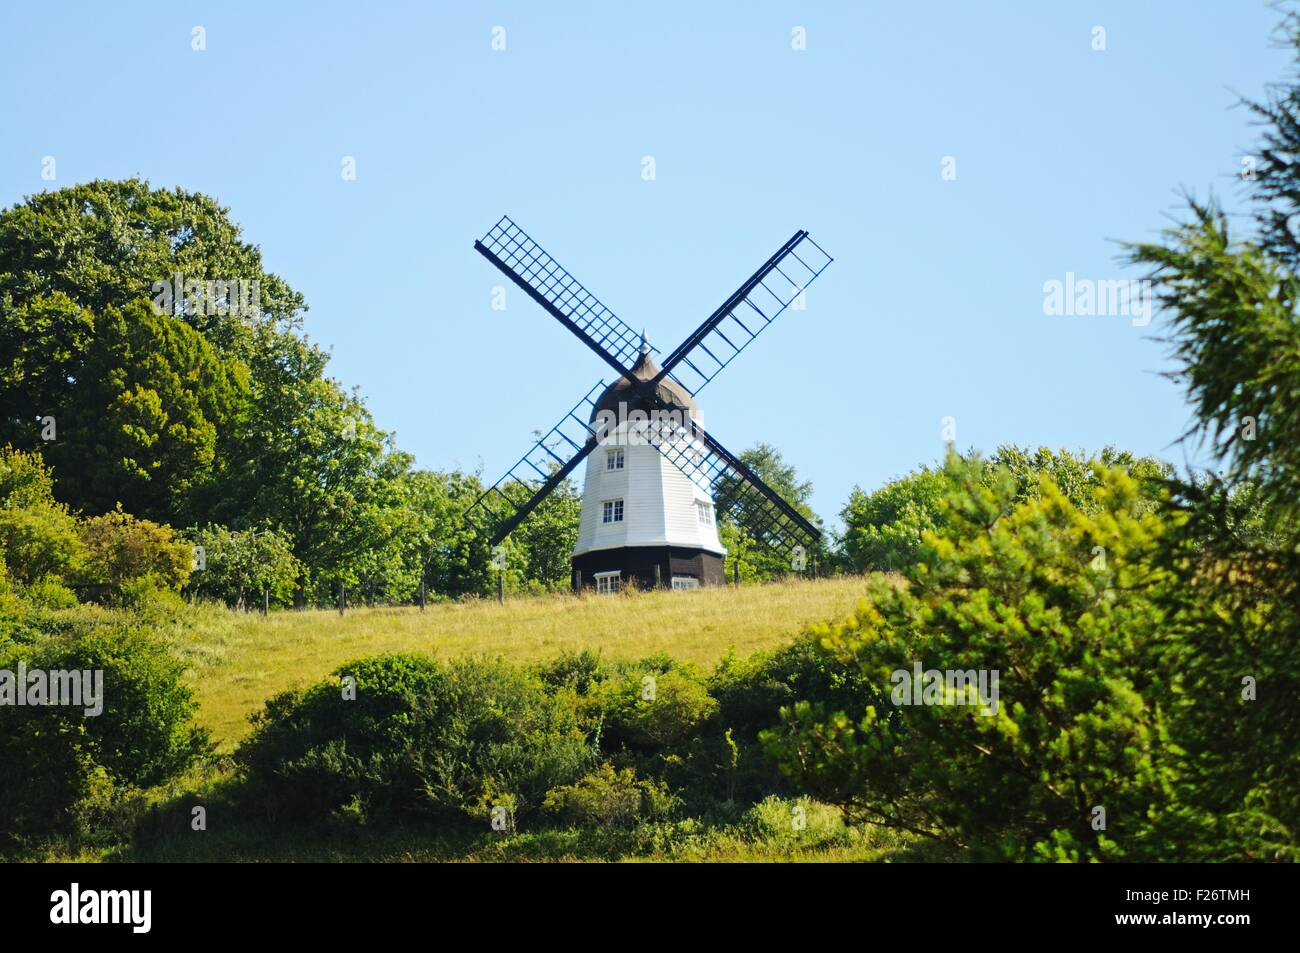 Cobstone Mill at Ibstone seen from Turville village, Turville, Buckinghamshire, England, UK, Western Europe. - Stock Image